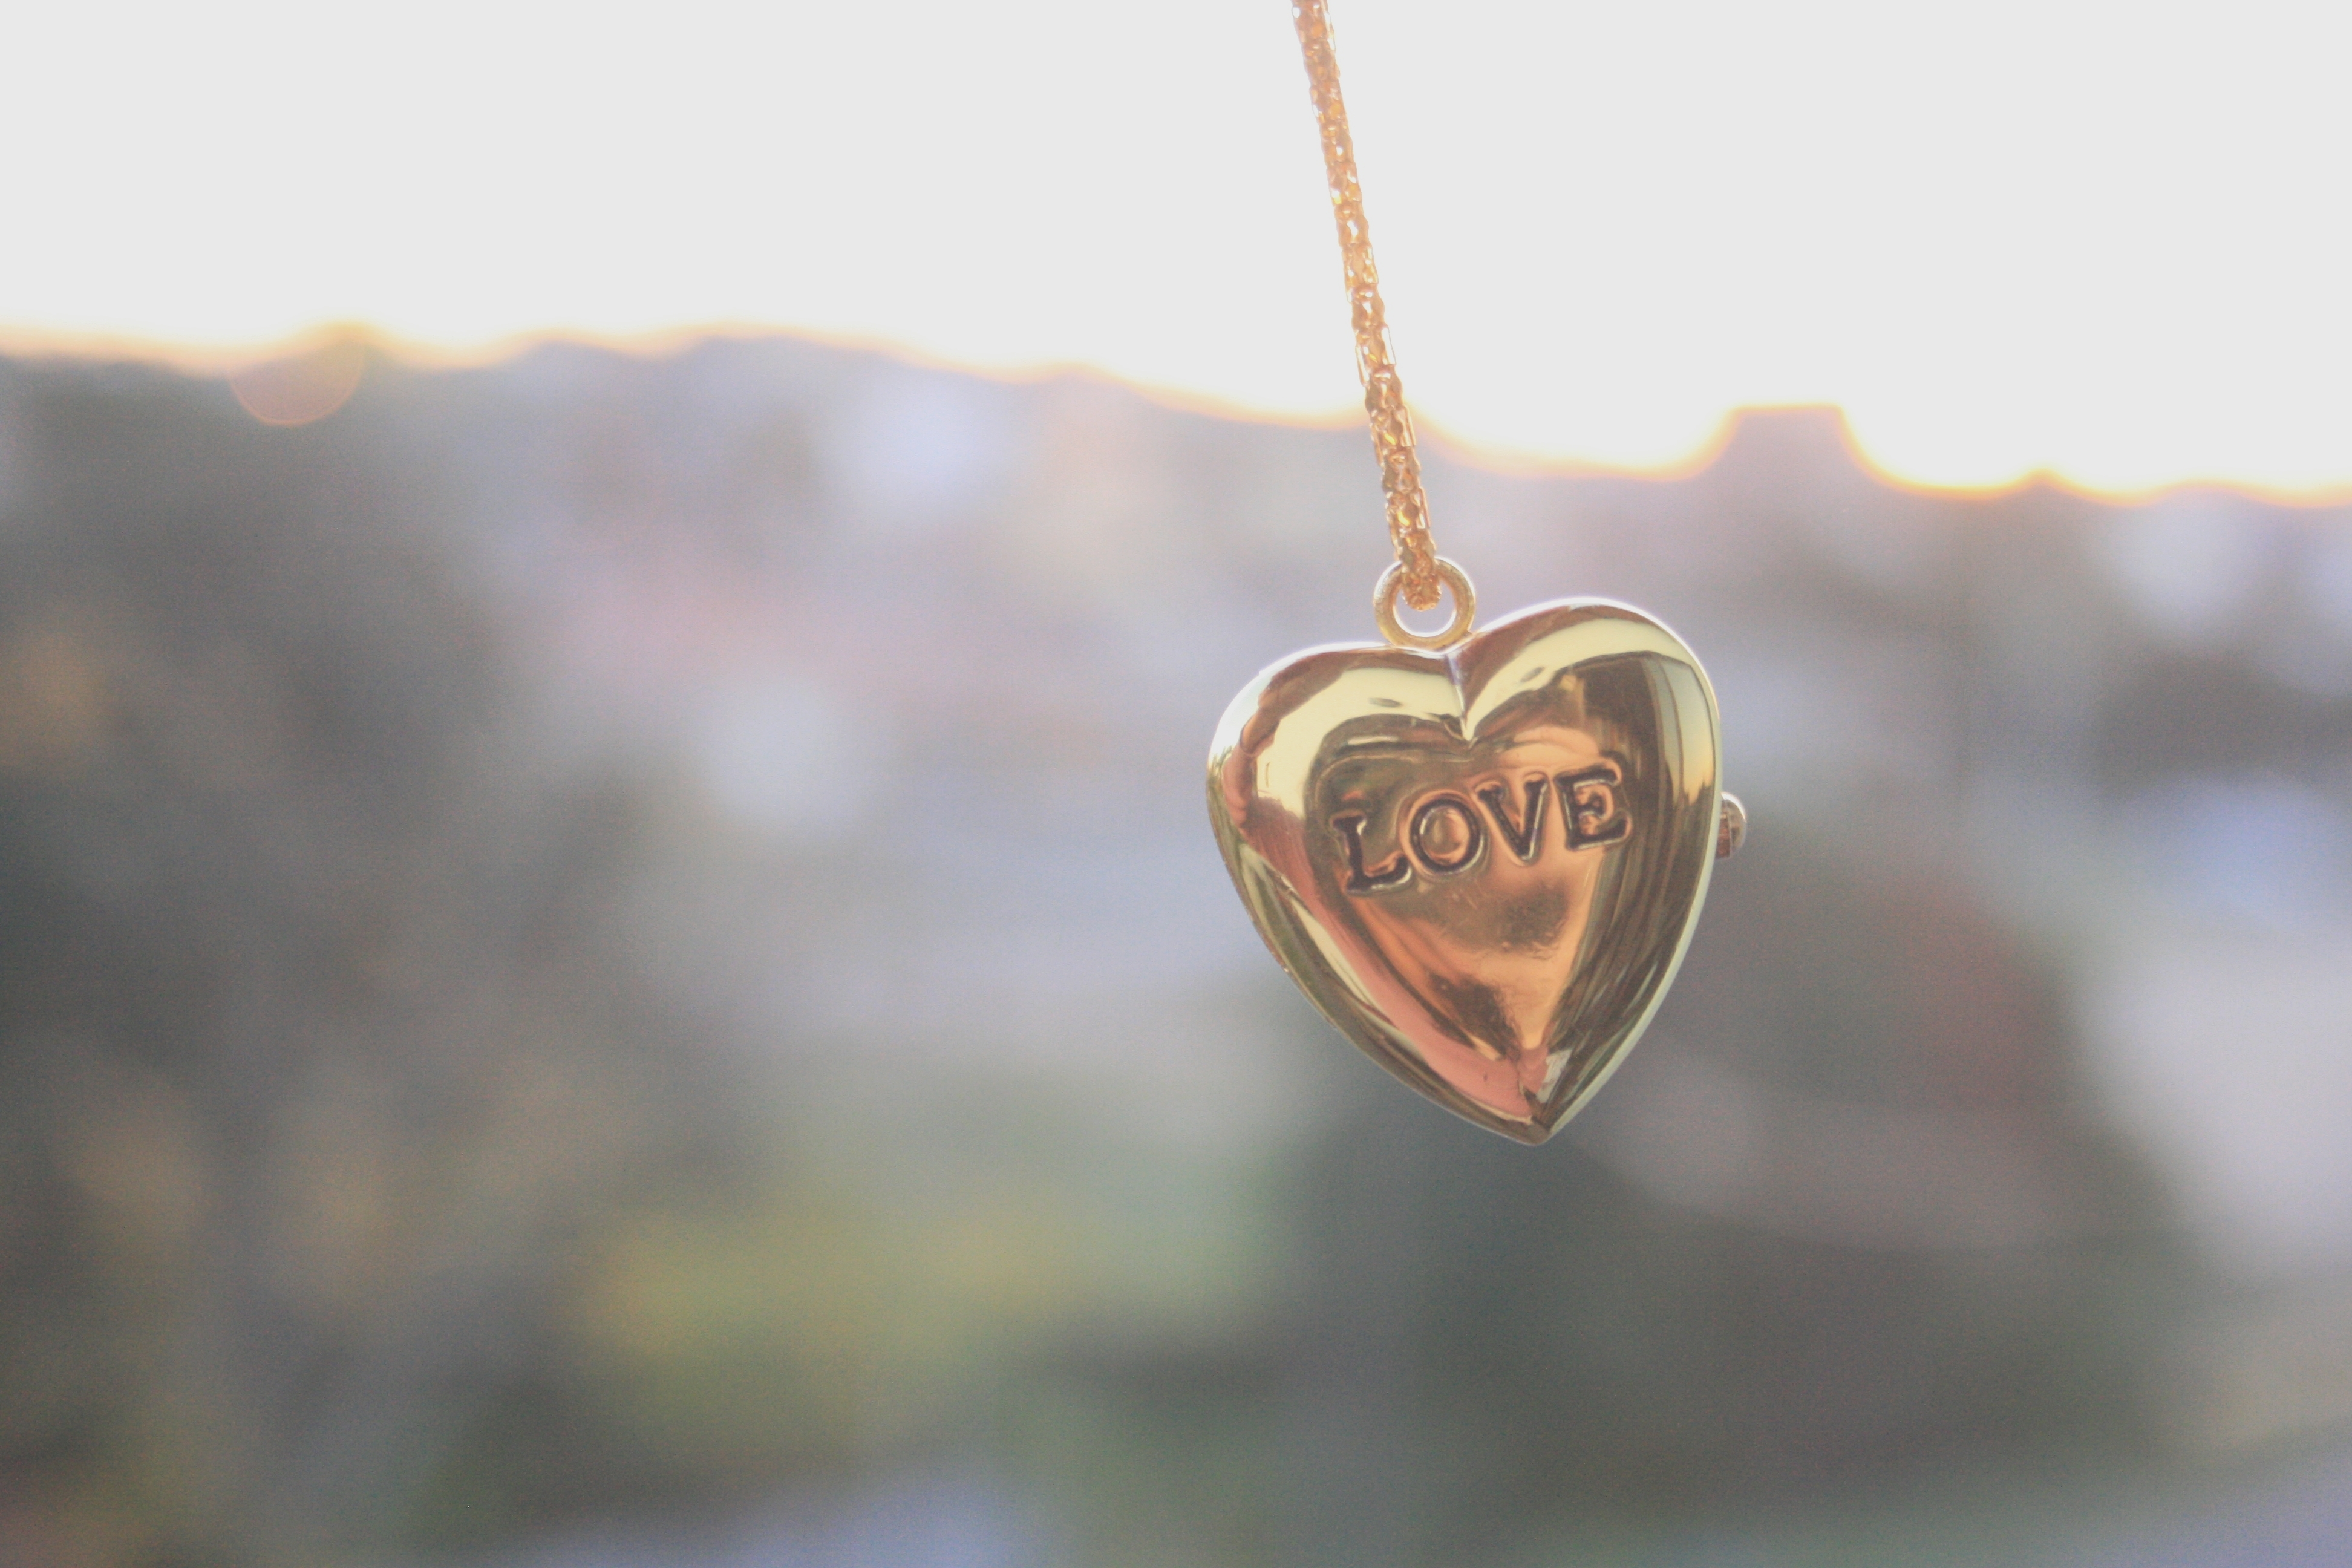 122194 download wallpaper Love, Mood, Decoration, Accessory, Chain, Pendant, Coulomb, Heart, Serdetschko screensavers and pictures for free